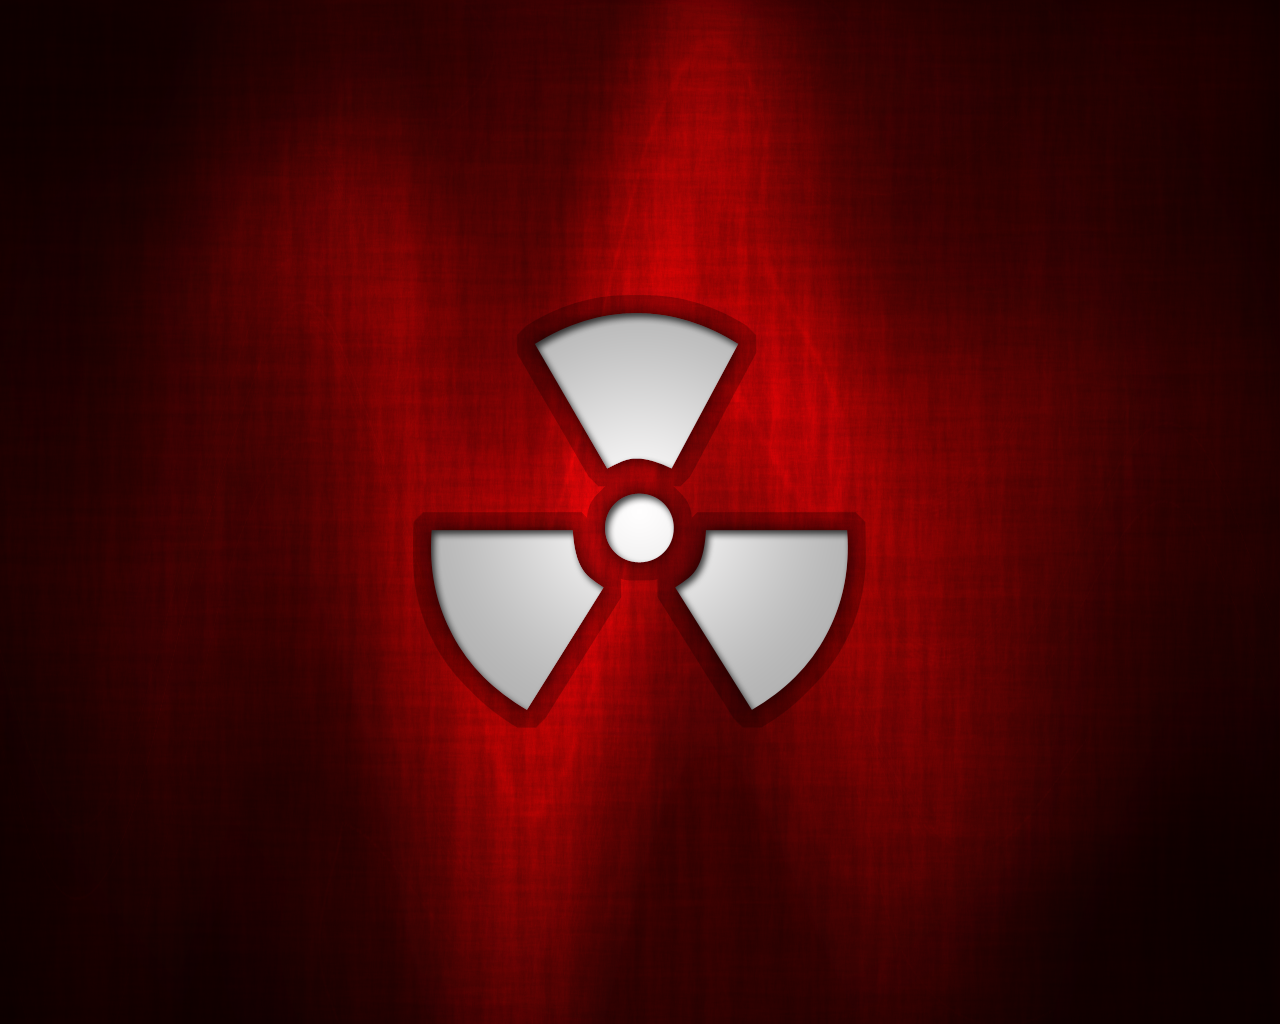 nuclear wallpaper by hello 123456 on deviantart